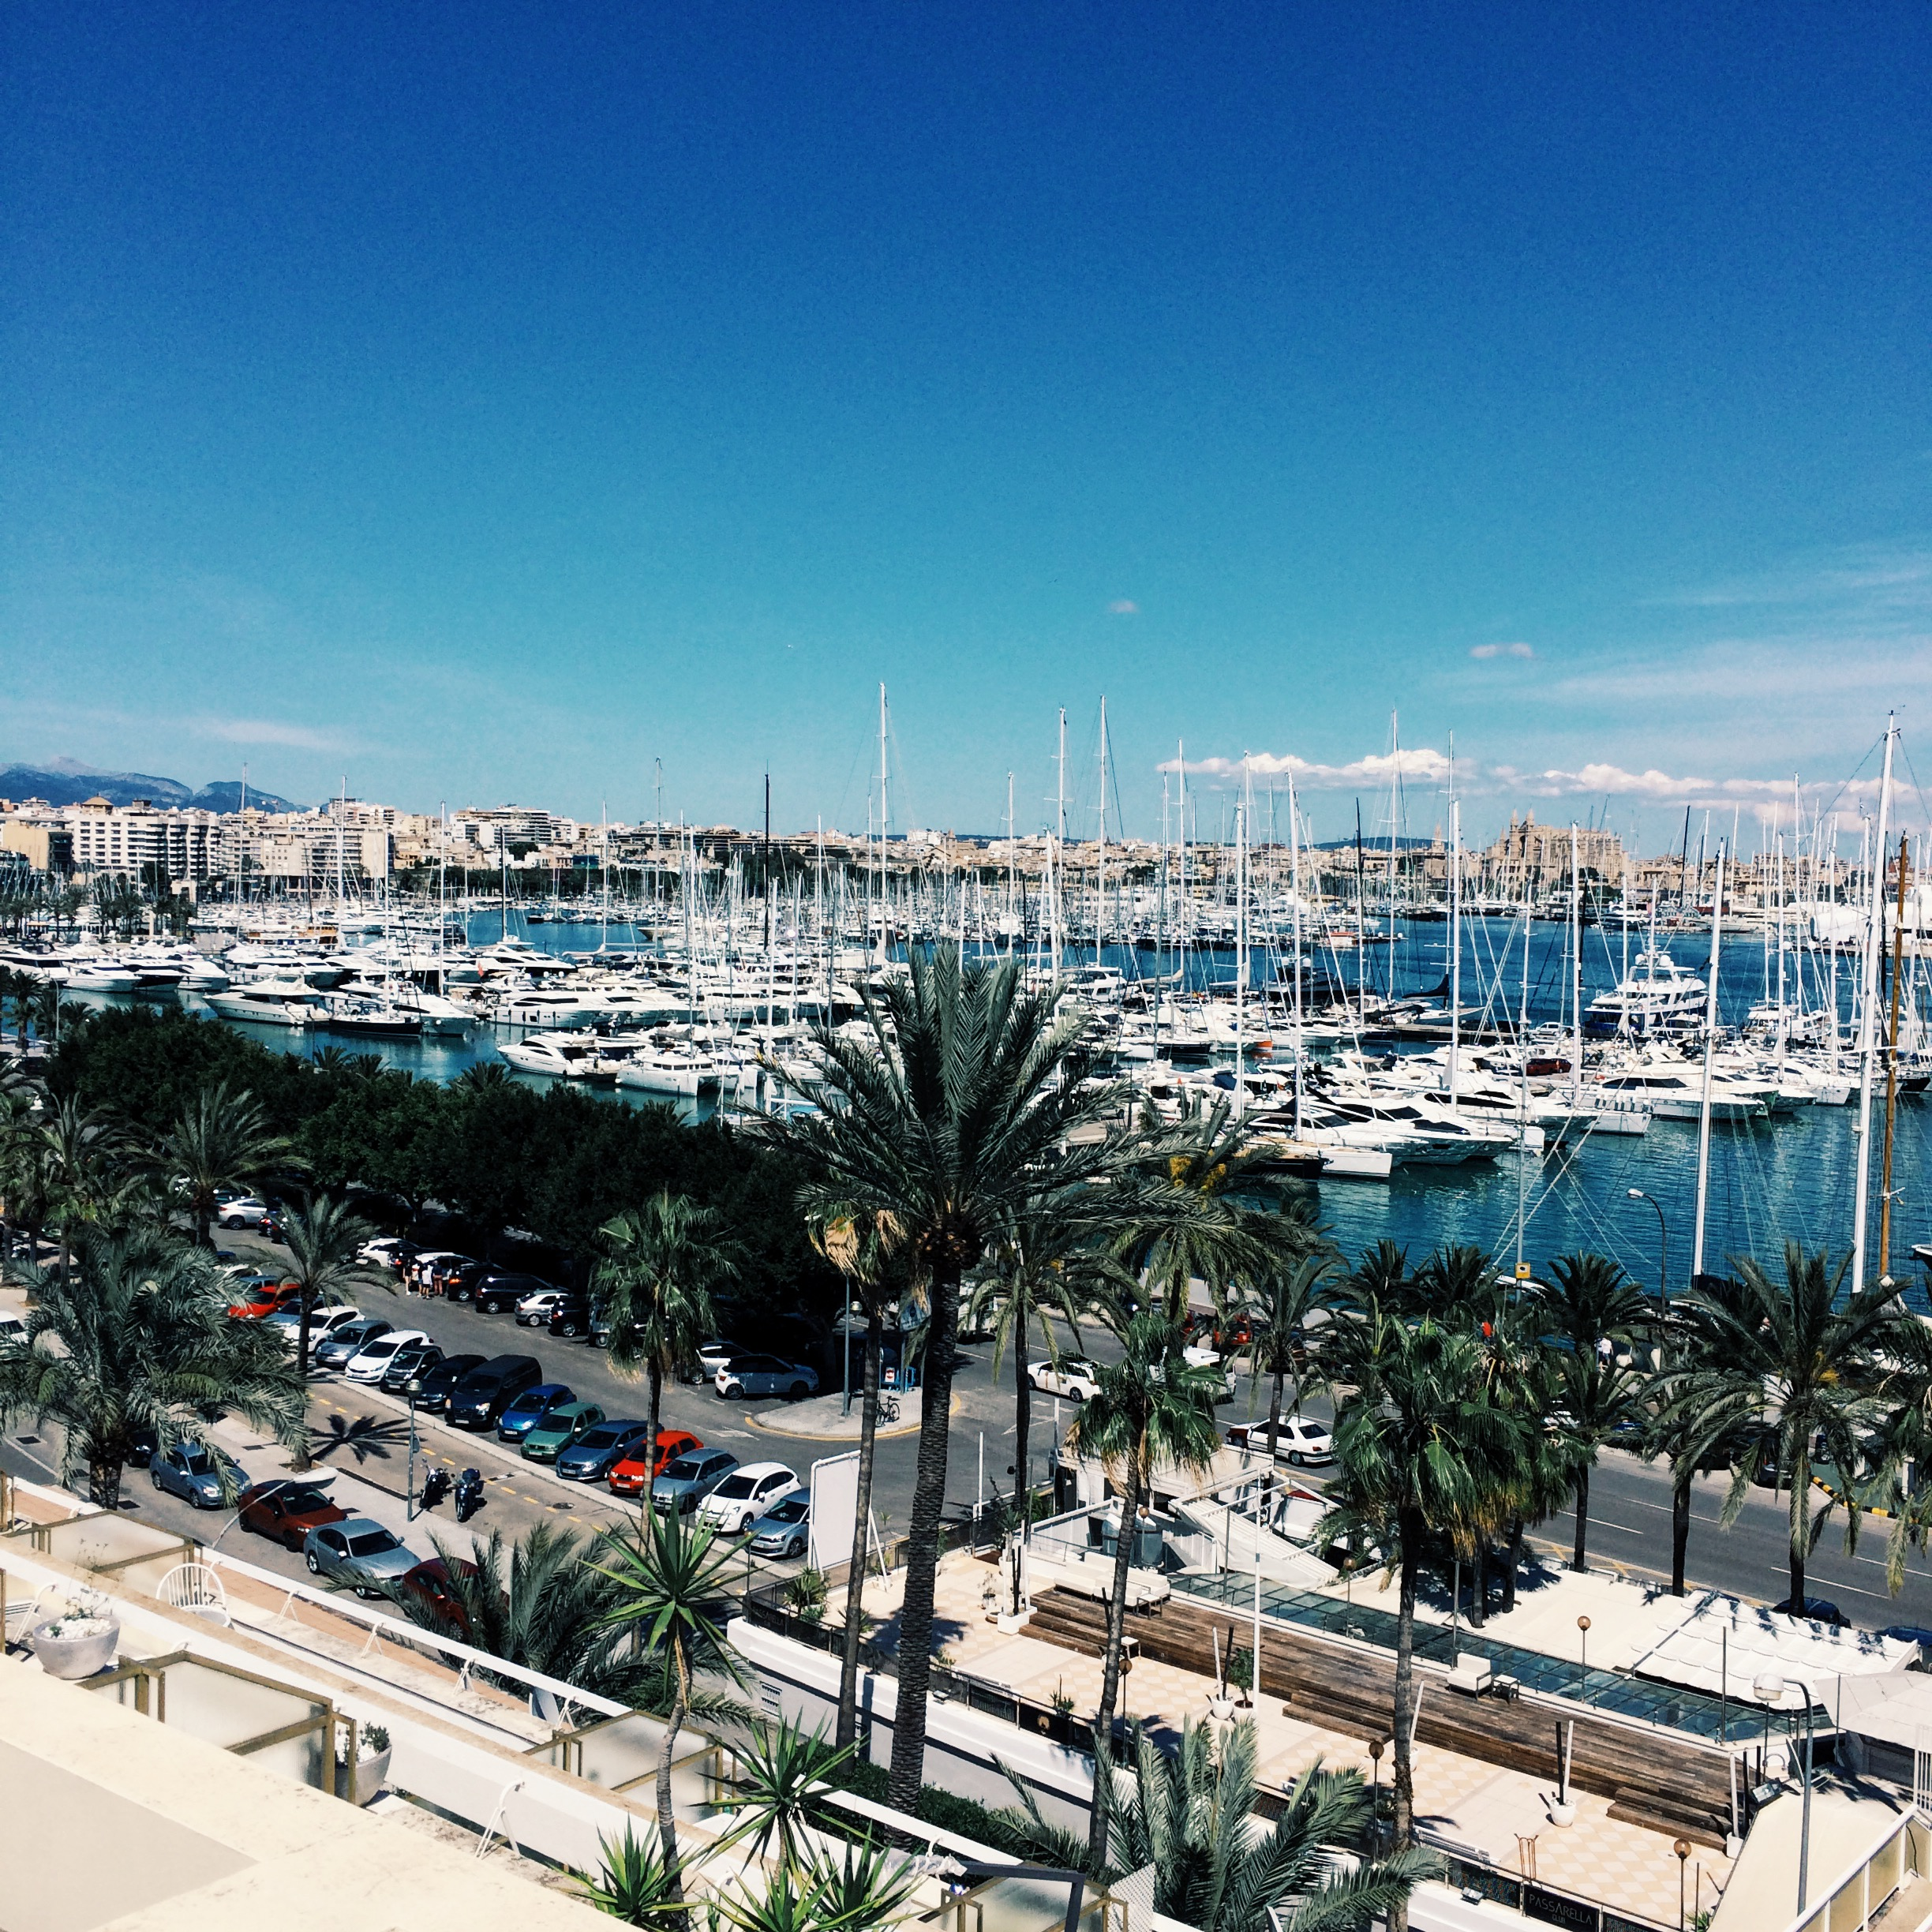 The port at Palma de Mallorca